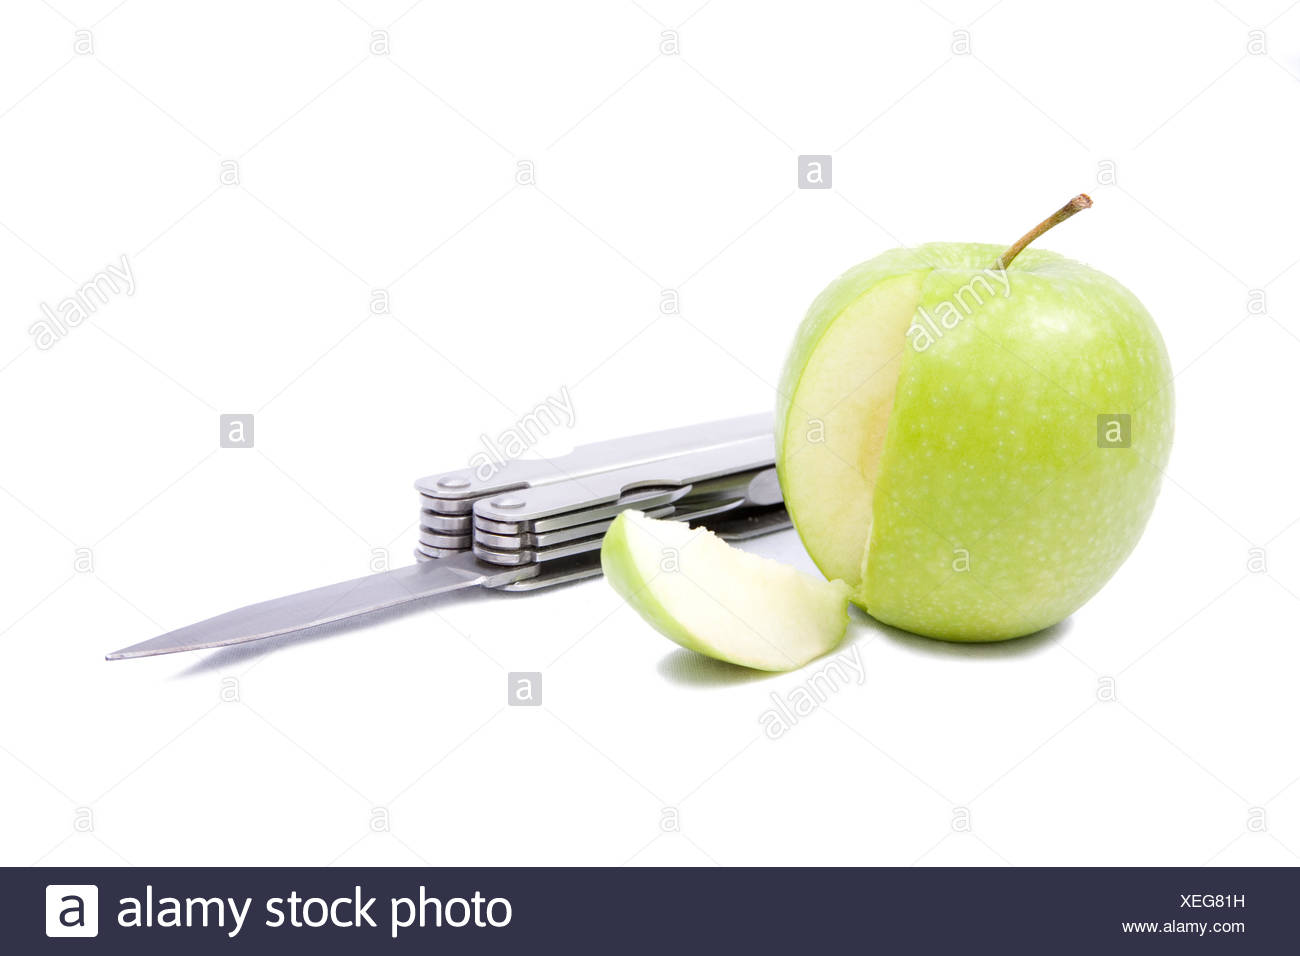 Apple and Knife - Stock Image